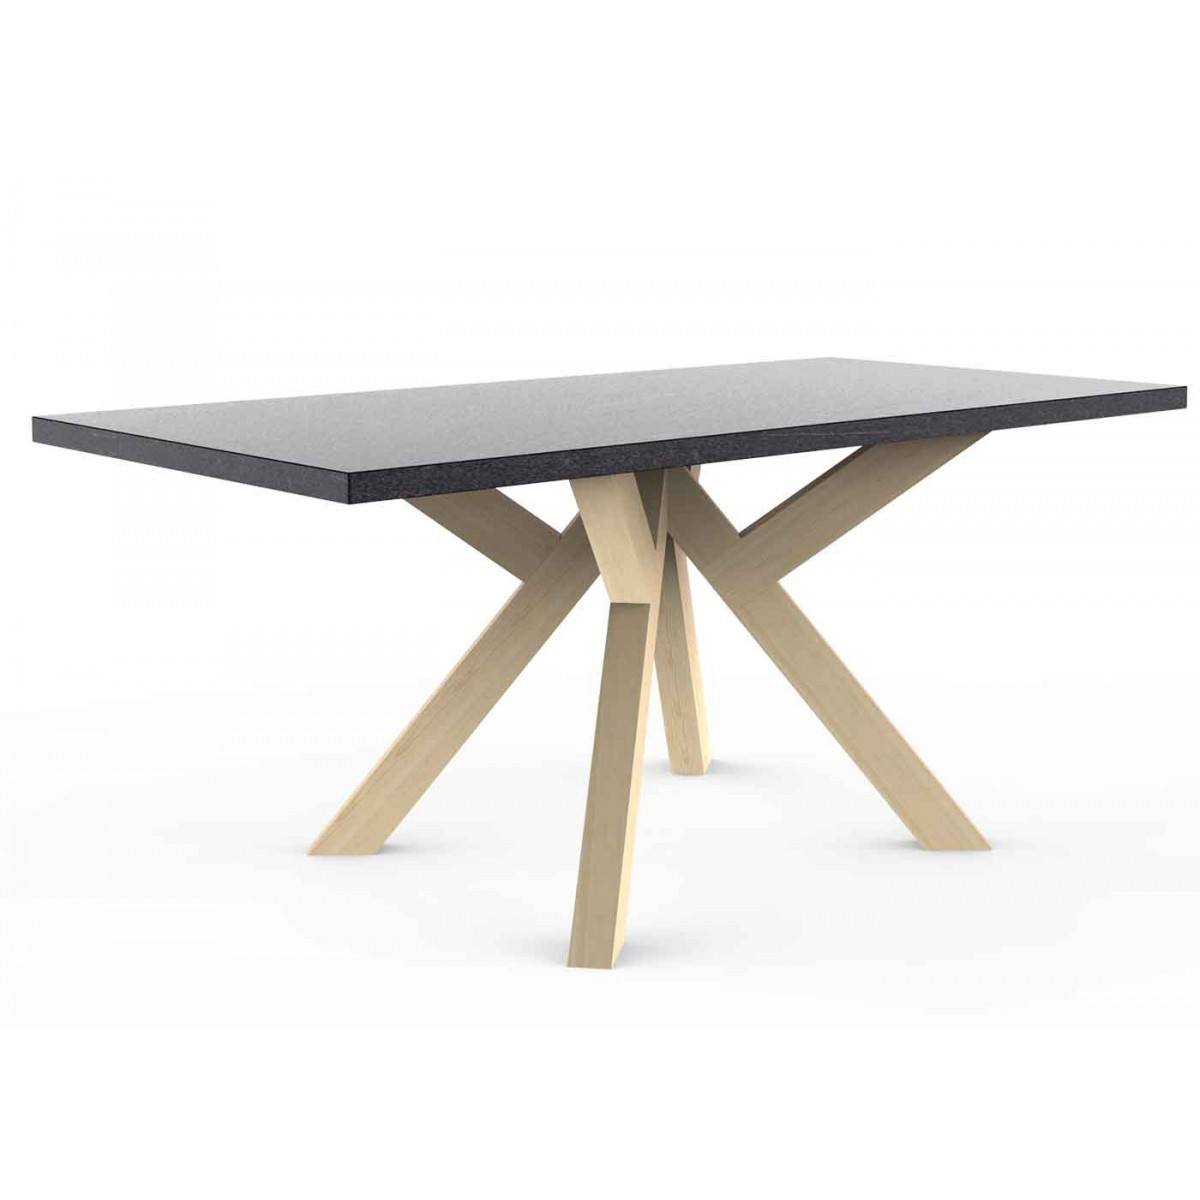 Pi tement design en bois massif pour table manger design for Pietement de table pliante